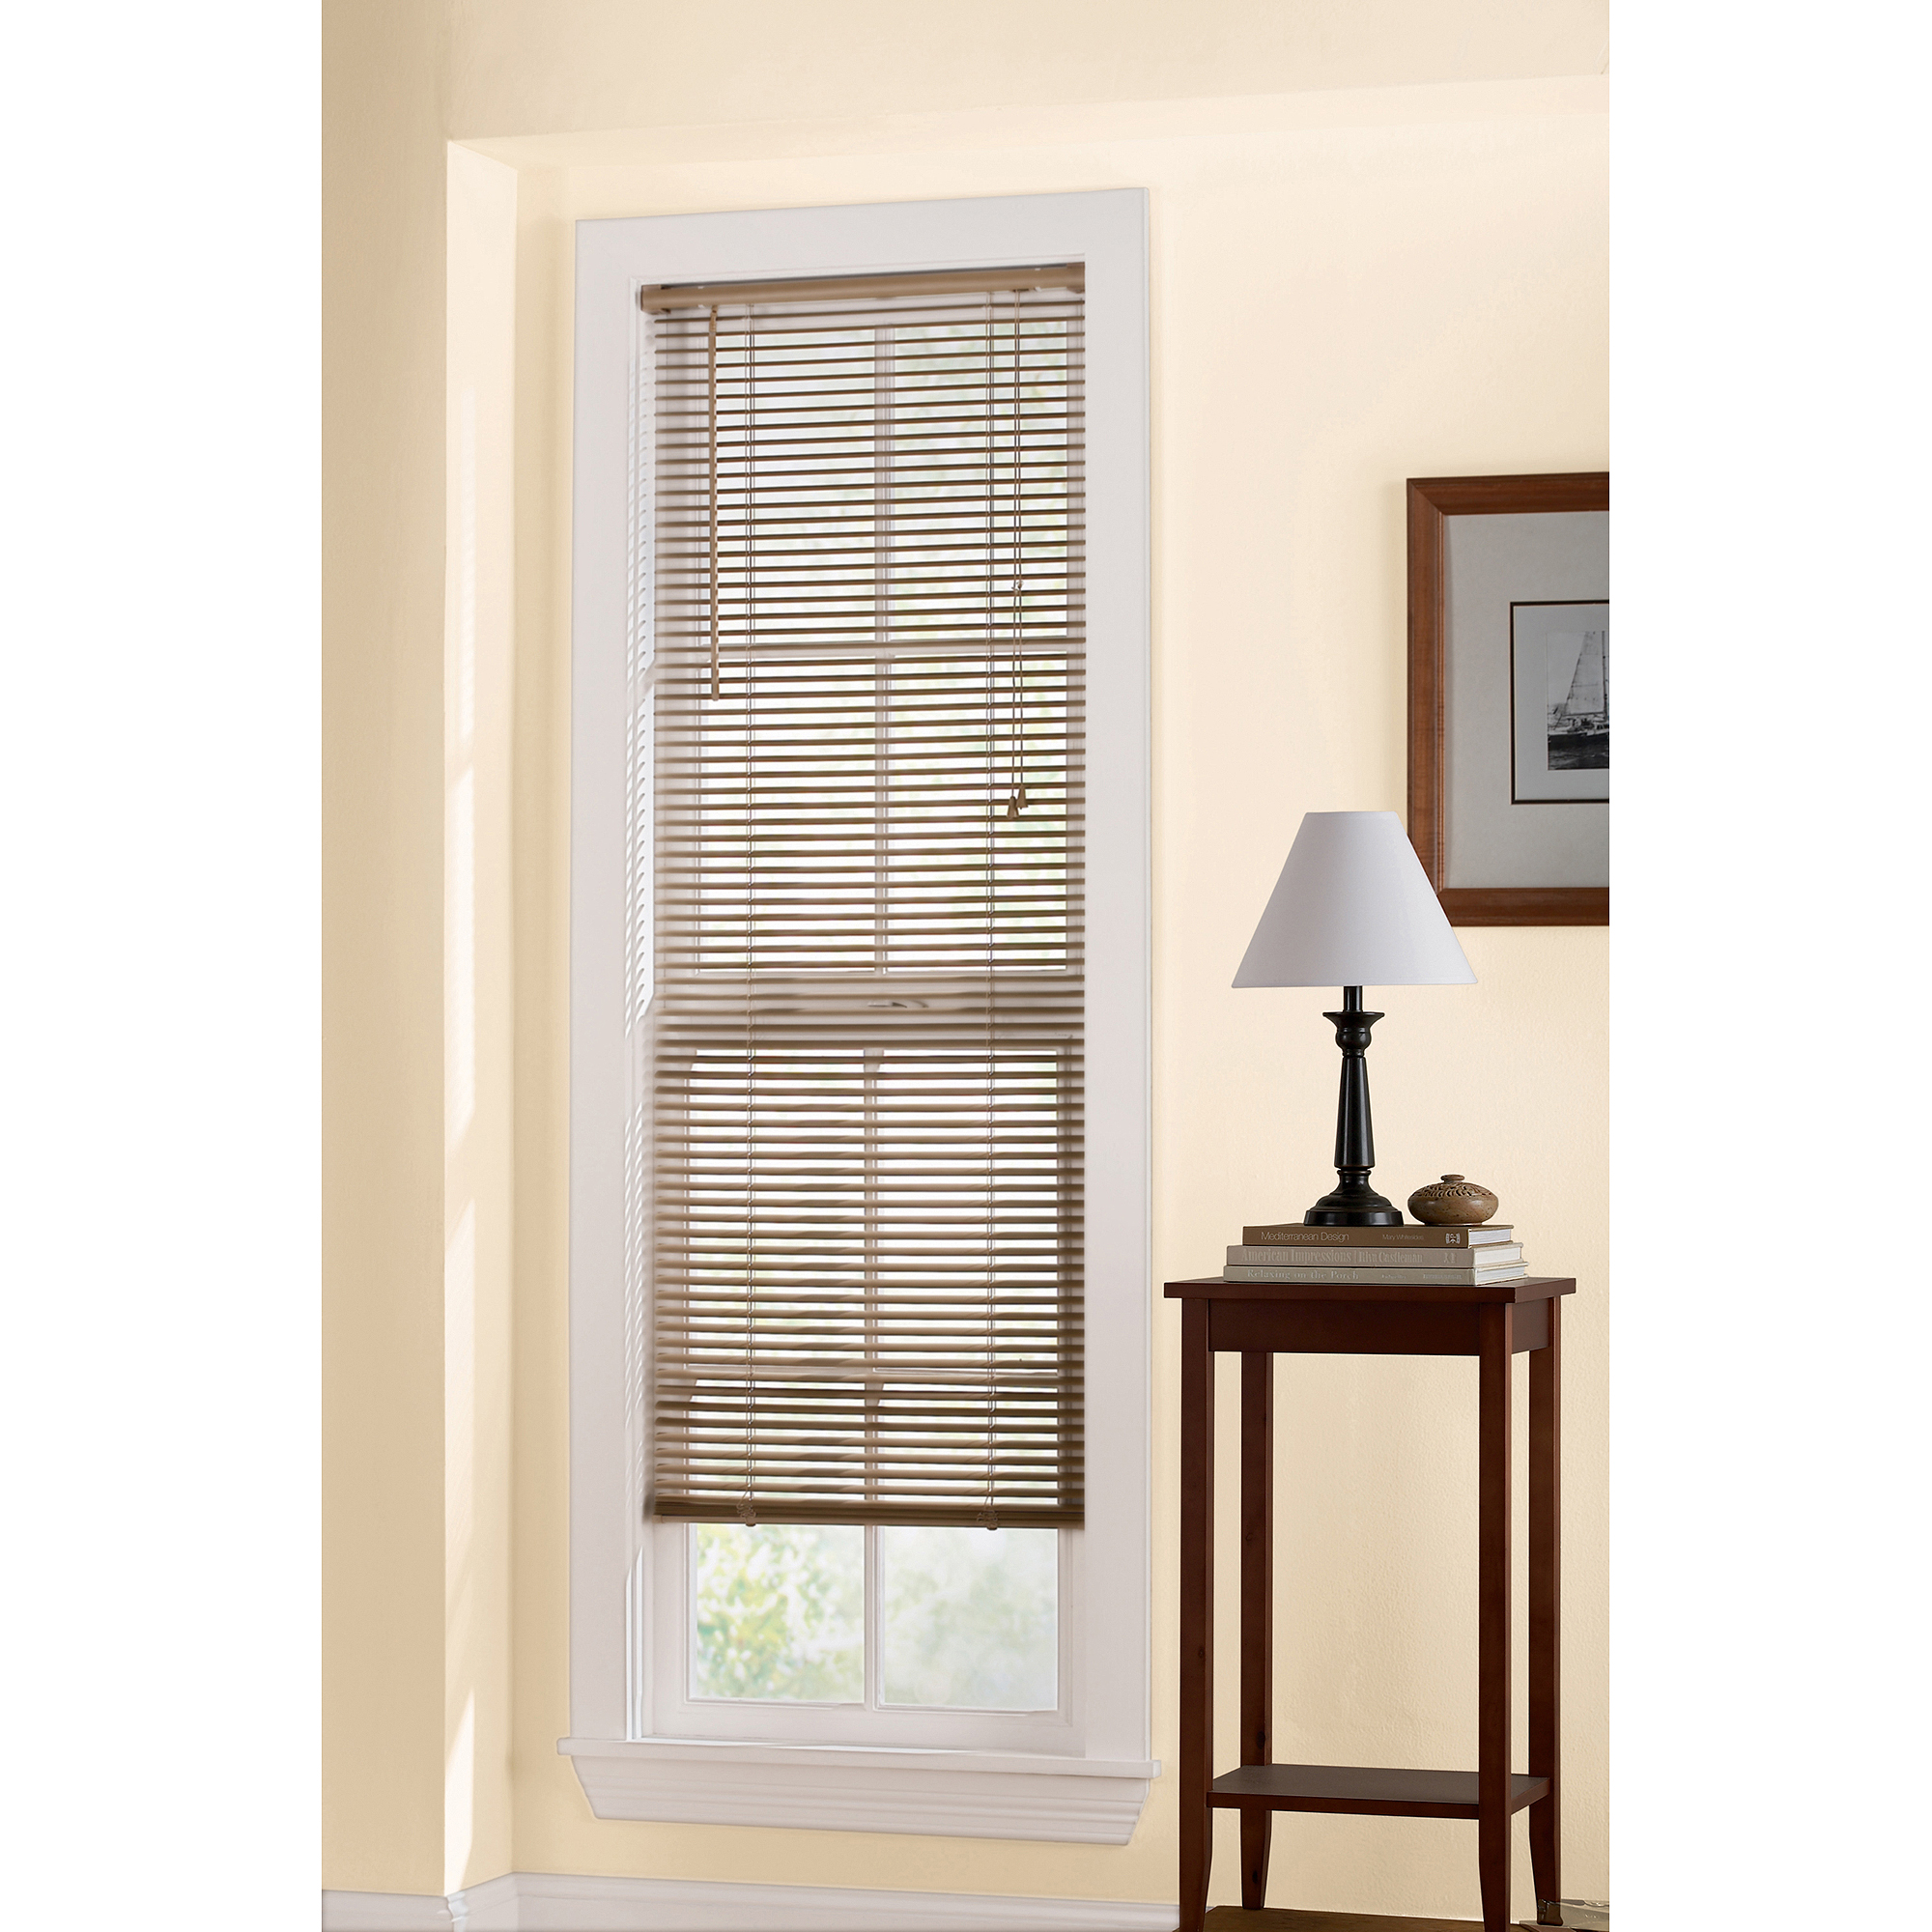 shades window faux win bamboo mini lowes wood pull target up cordless decor down myhomedesign blinds